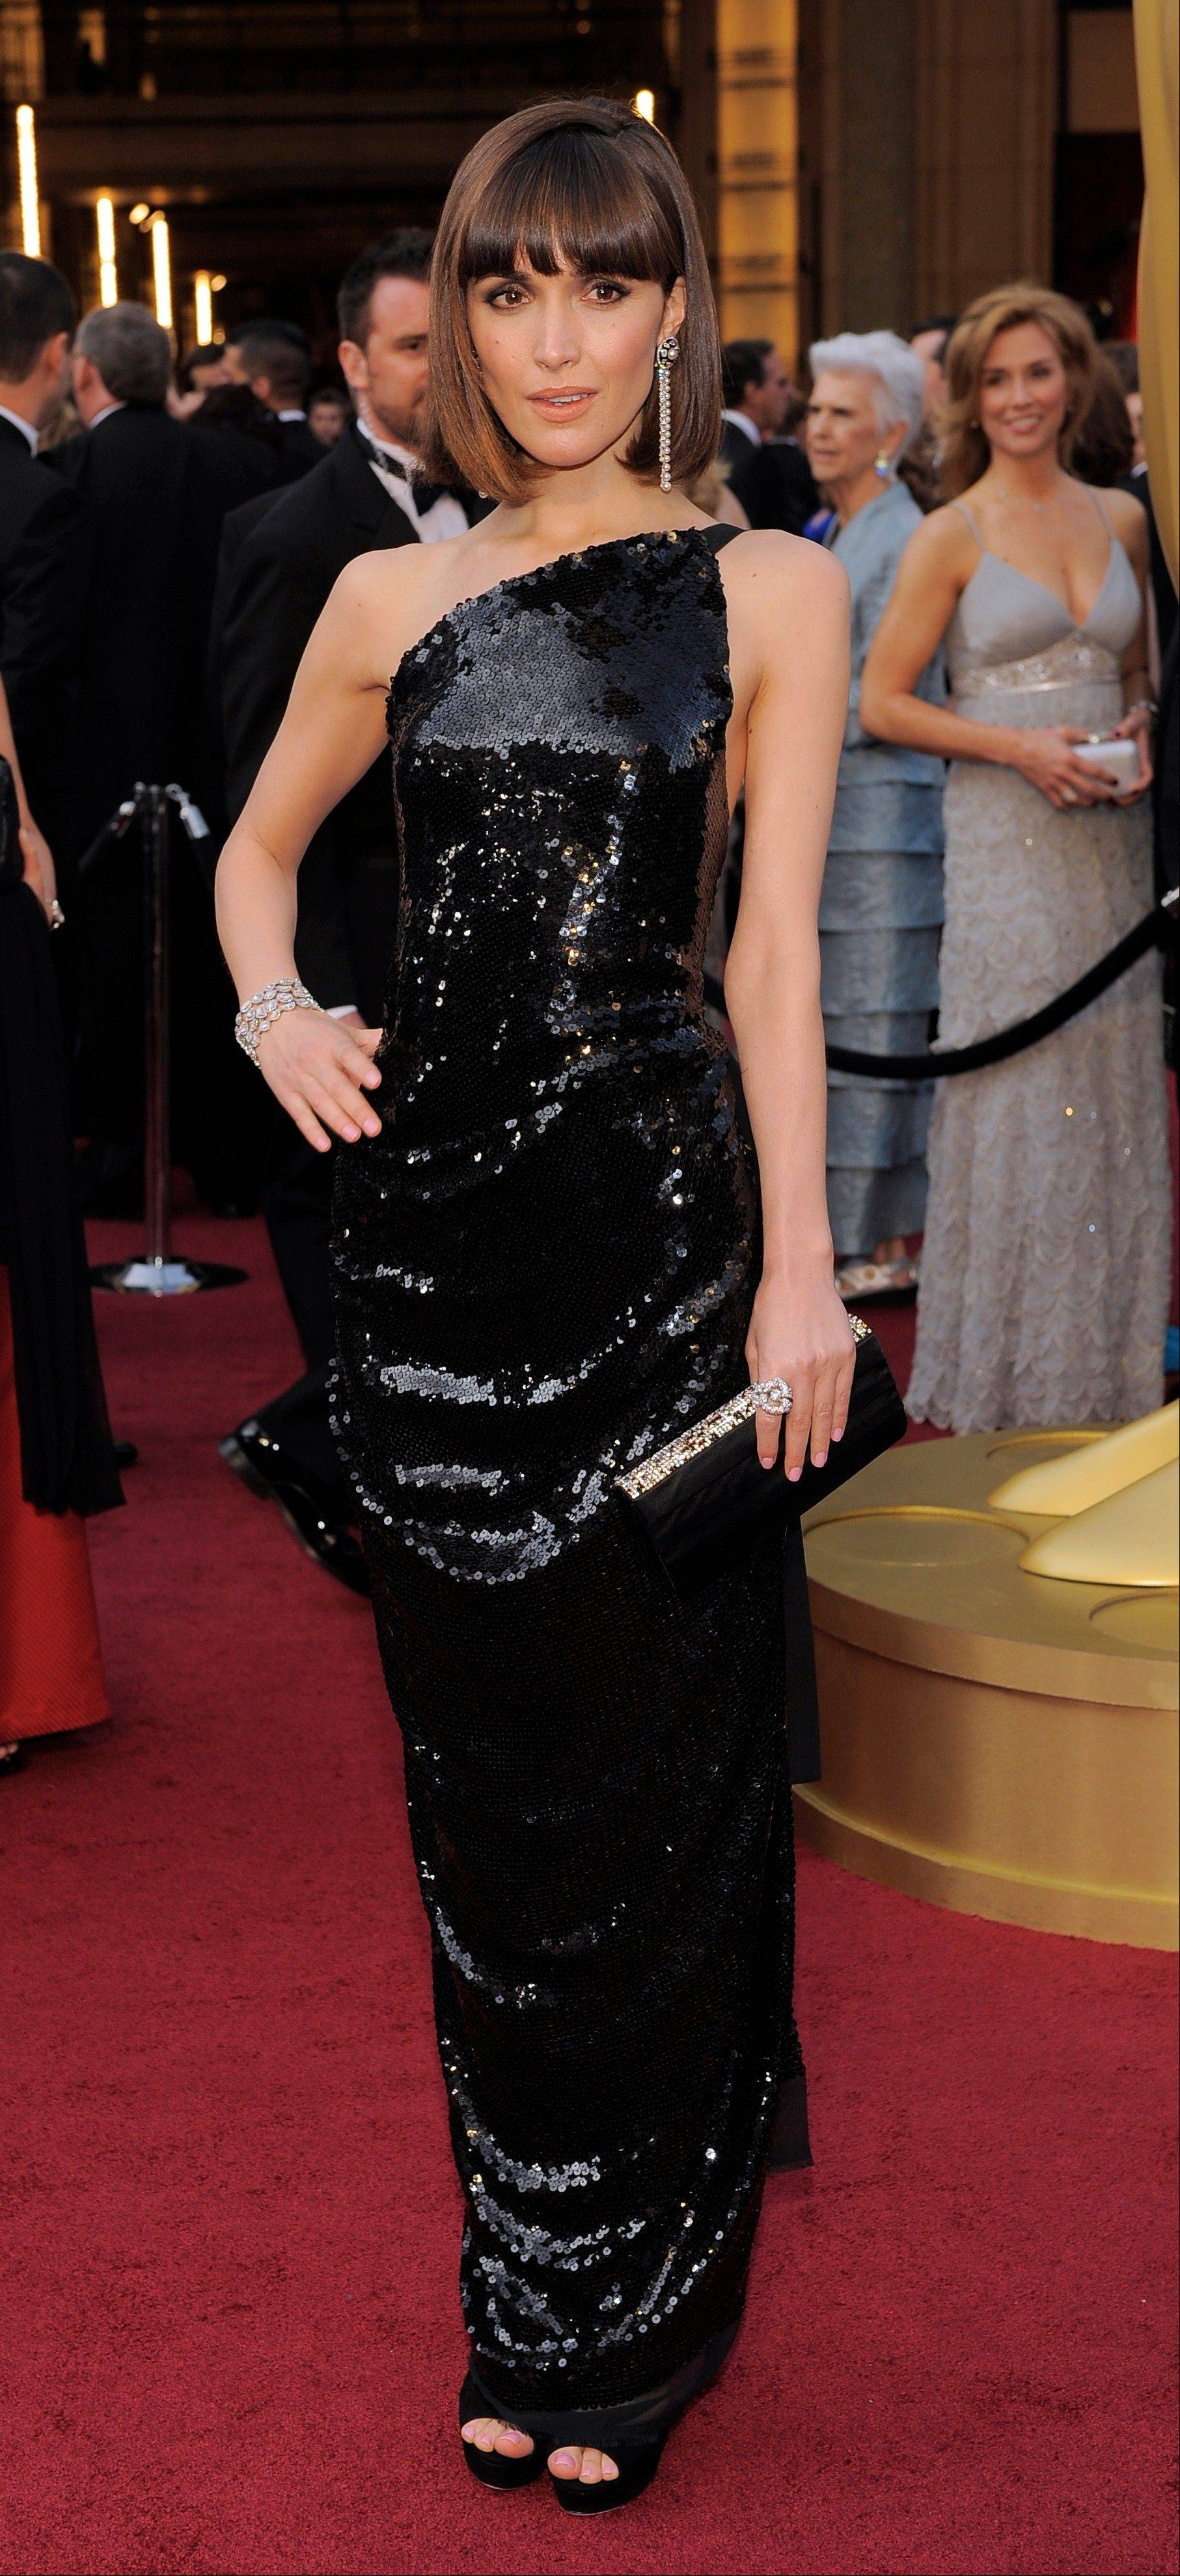 Rose Byrne donned a Vivienne Westwood gown for the Oscars.